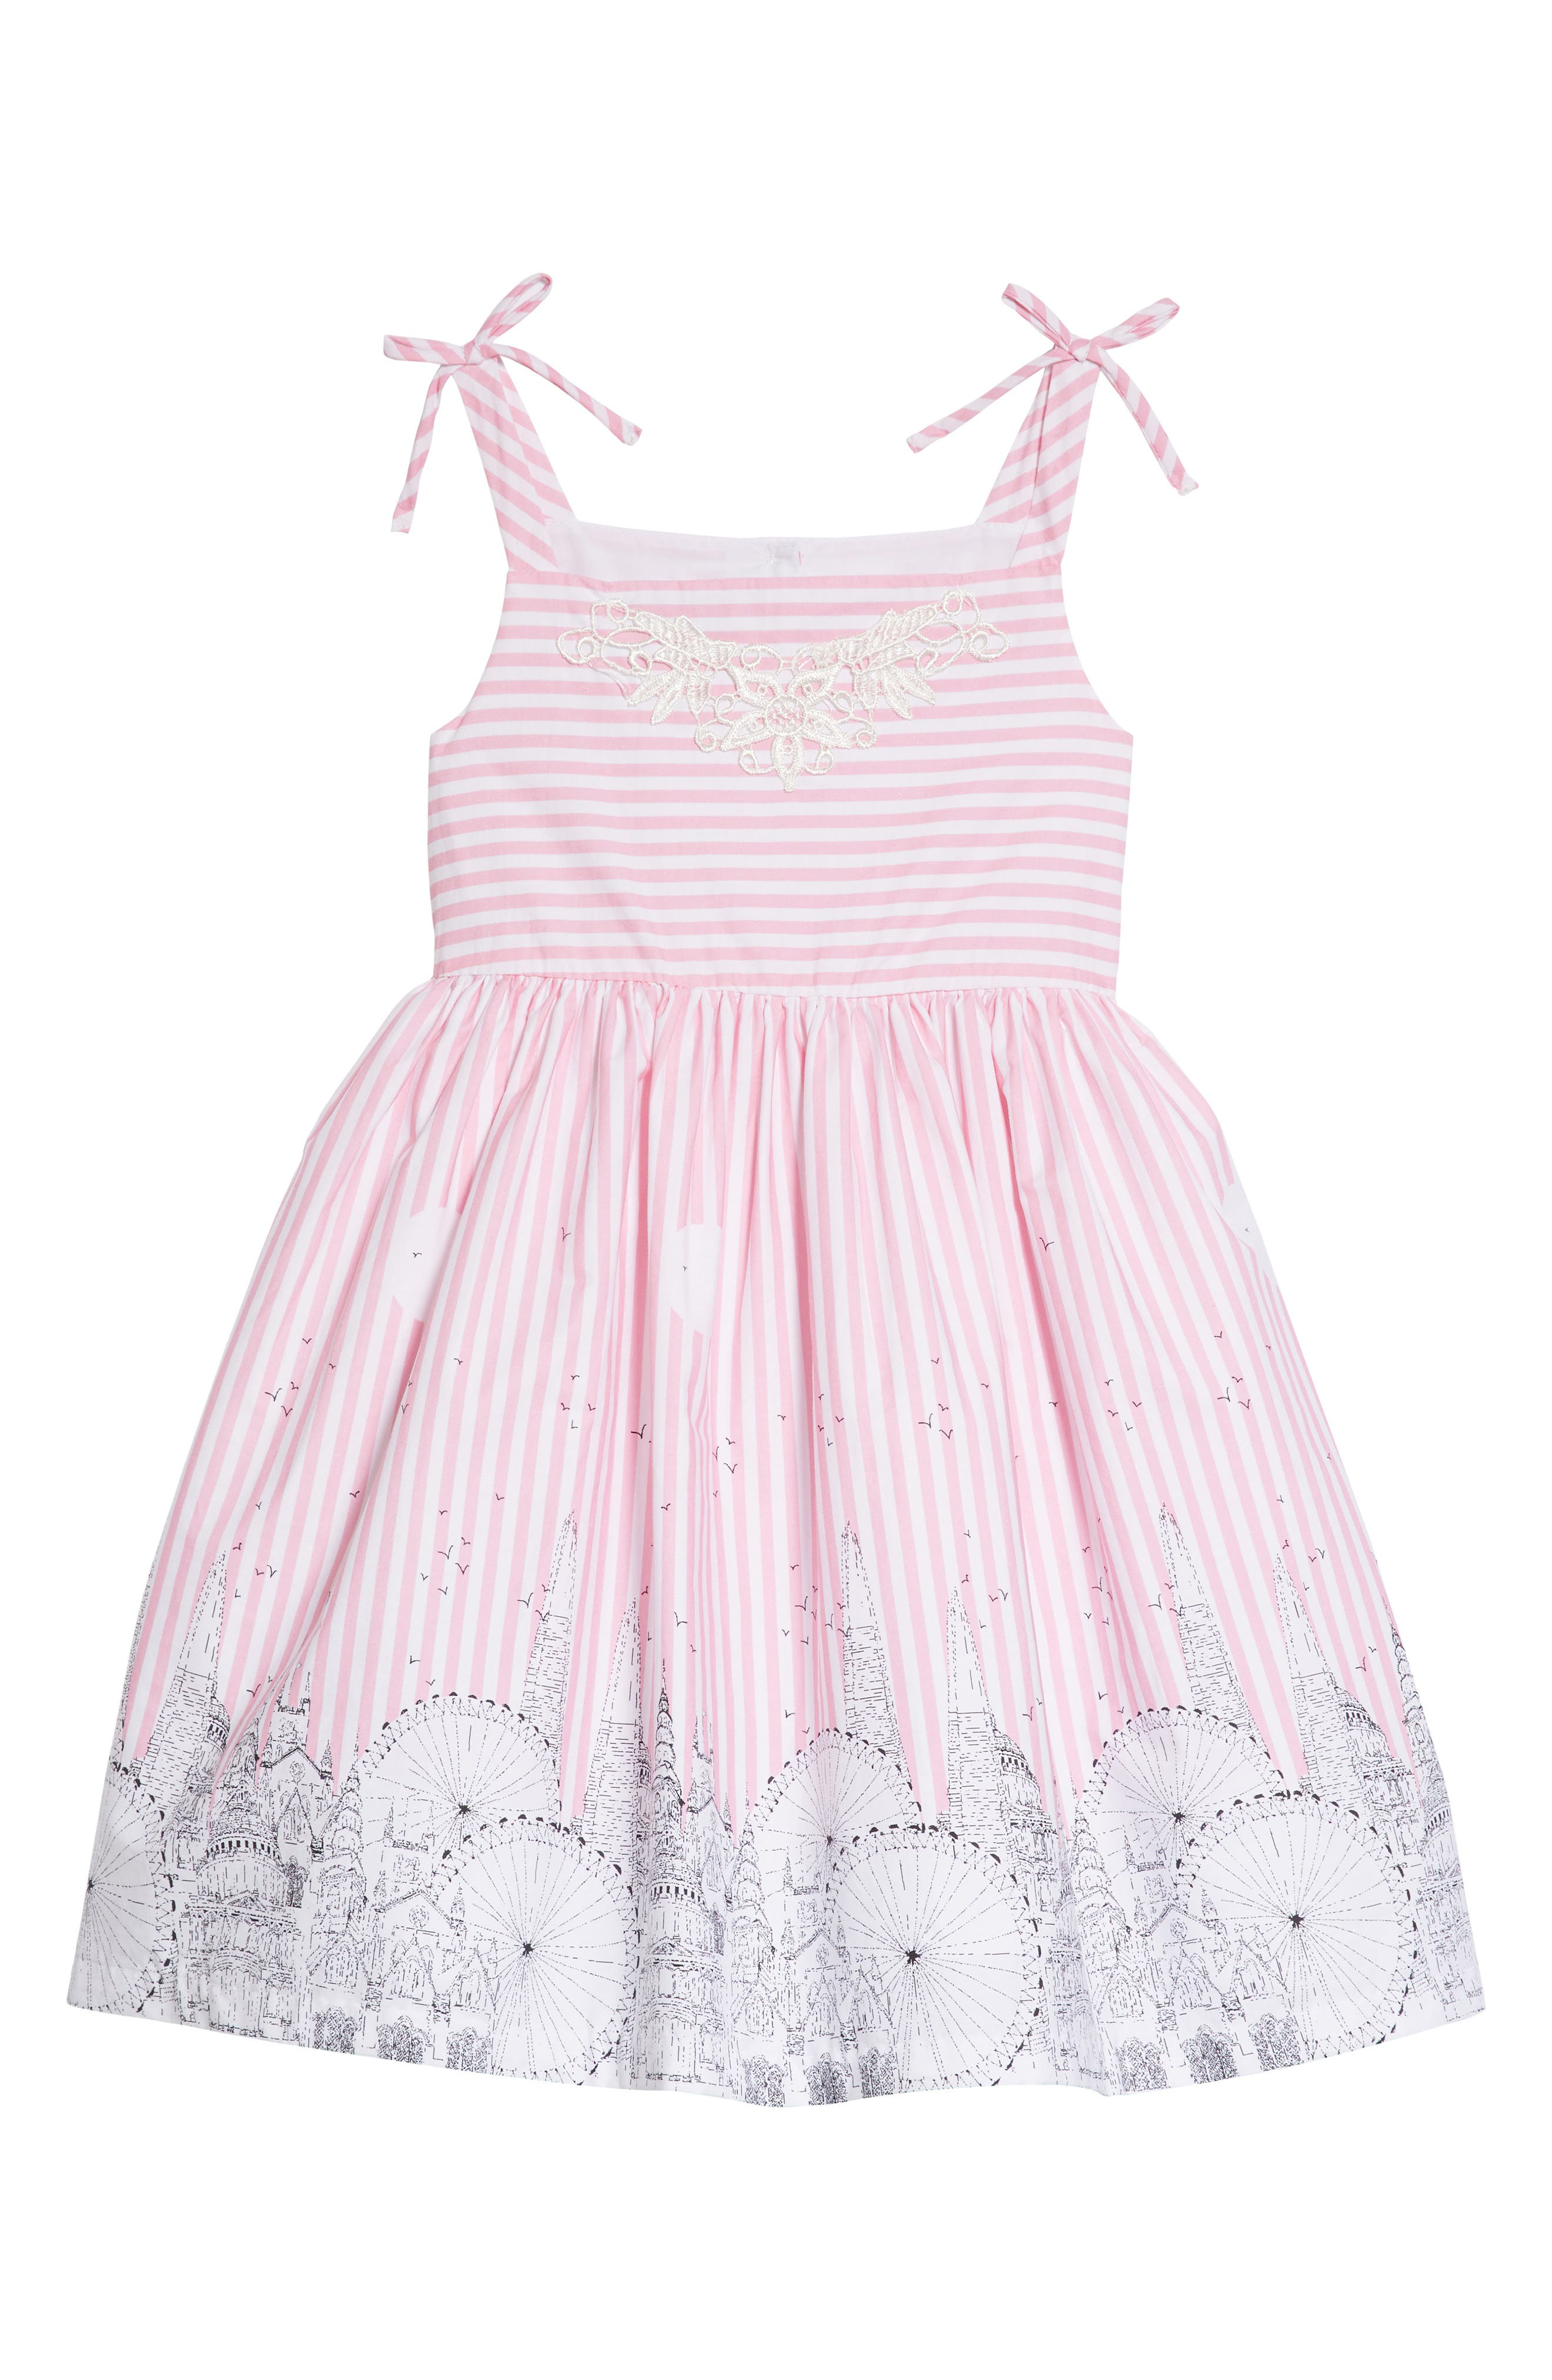 Pippa & Julie Cityscape Dress (Toddler Girls, Little Girls & Big Girls)